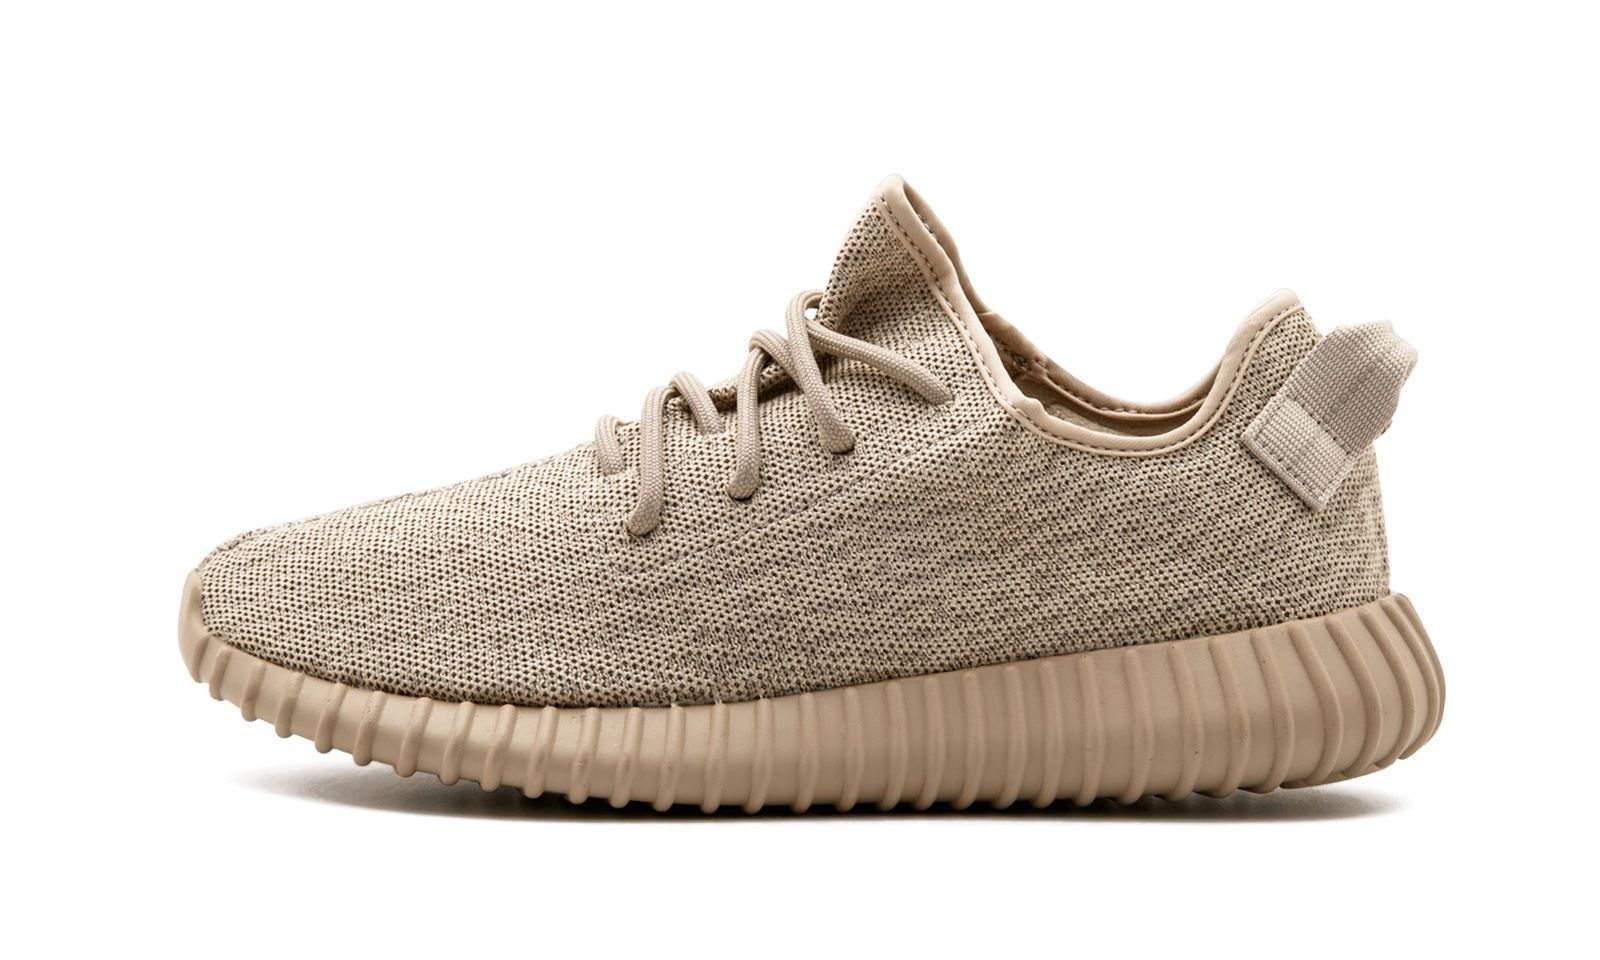 6cc677325 Adidas Yeezy Boost 350 Oxford Tan Running Shoes - Buy Adidas Yeezy Boost 350  Oxford Tan Running Shoes Online at Best Prices in India on Snapdeal